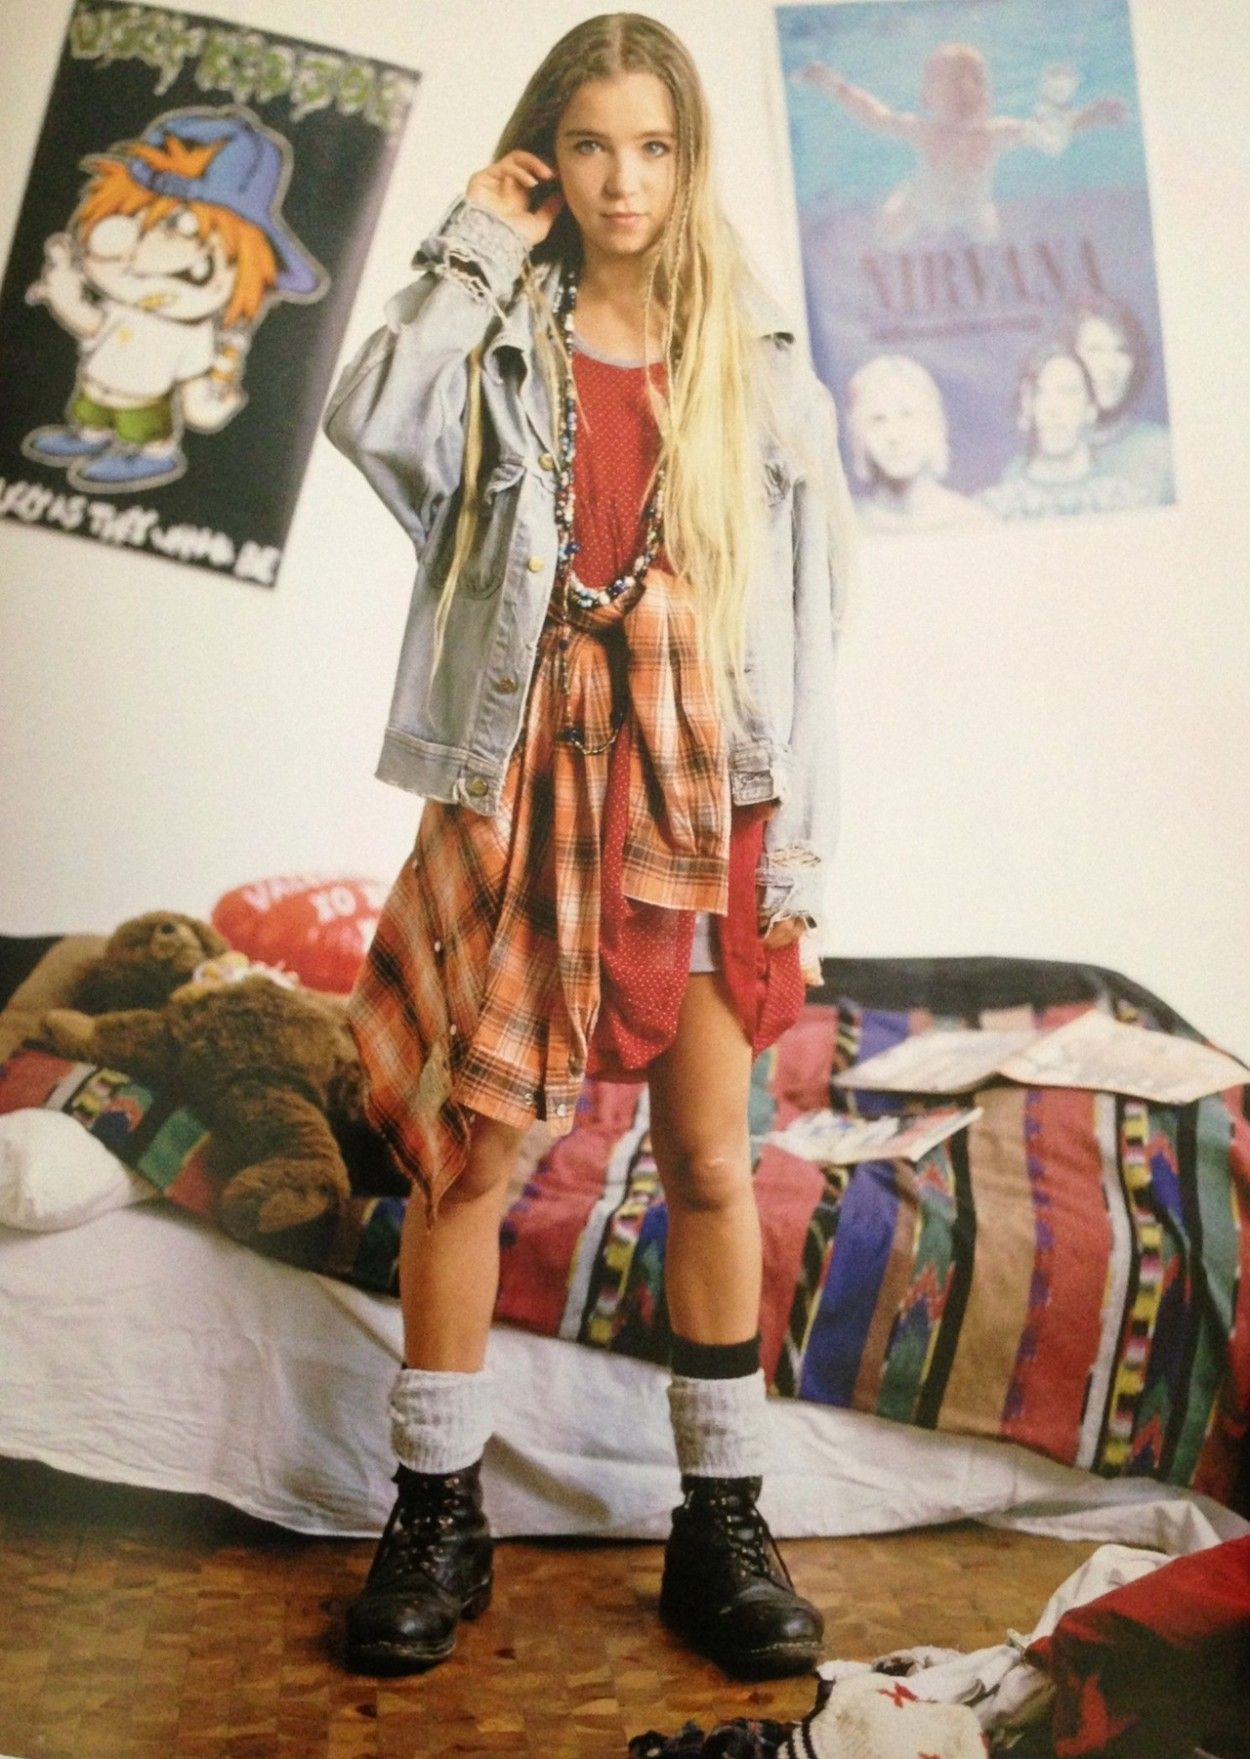 Timeline of fashion   Multimedia Dramaturgy Image Board   Pinterest     Cool 90s Fashion Trends in Memory